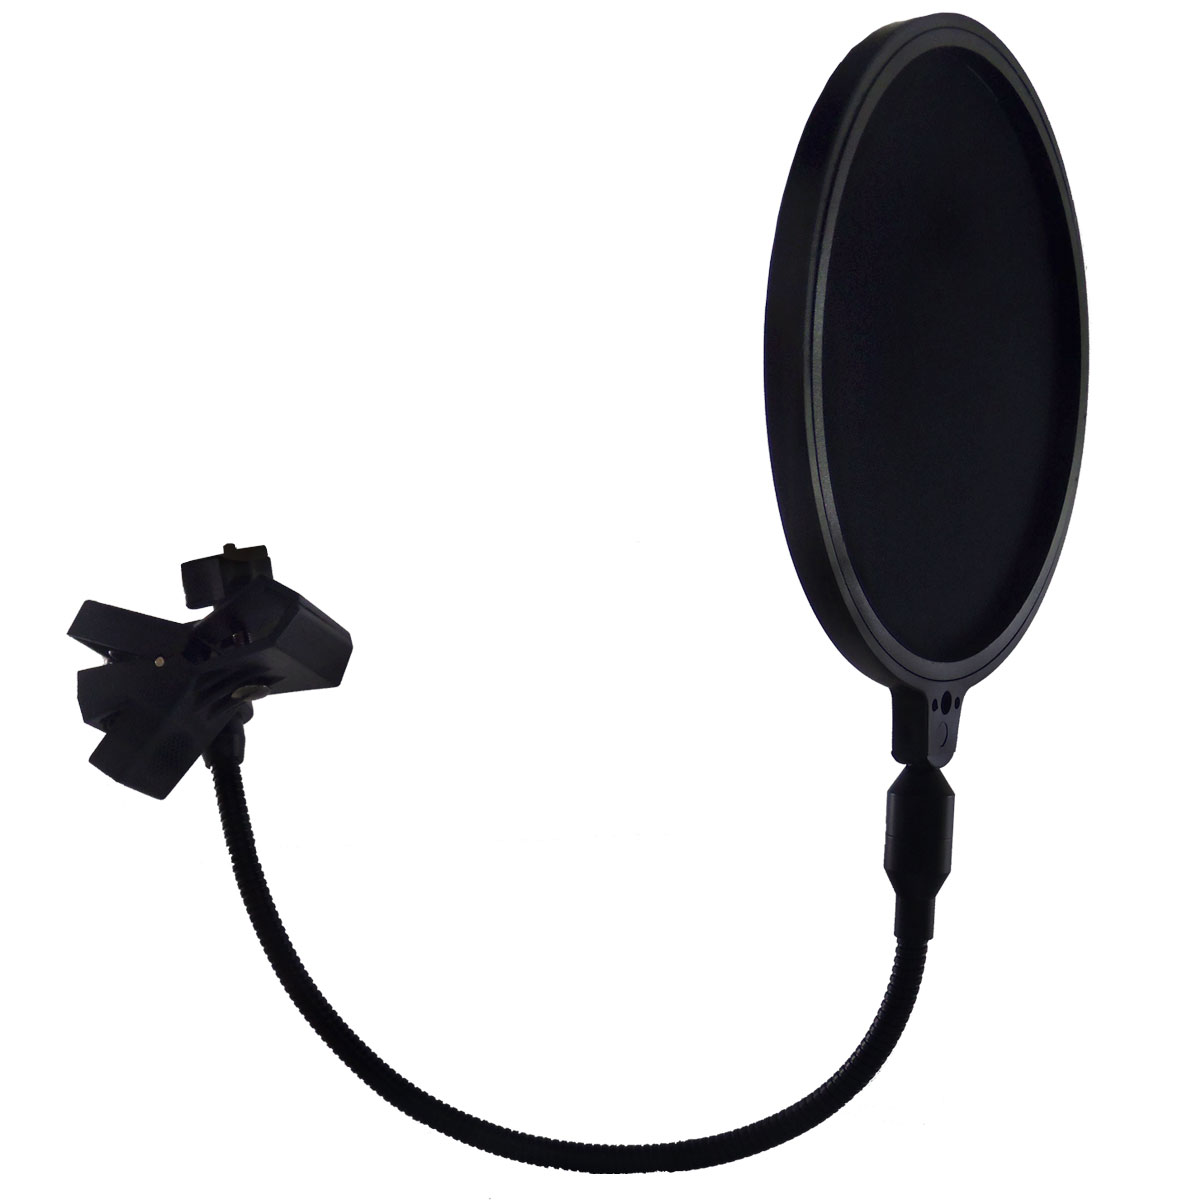 SPS015 - Pop Filter Anti Puff SPS 015 - CSR